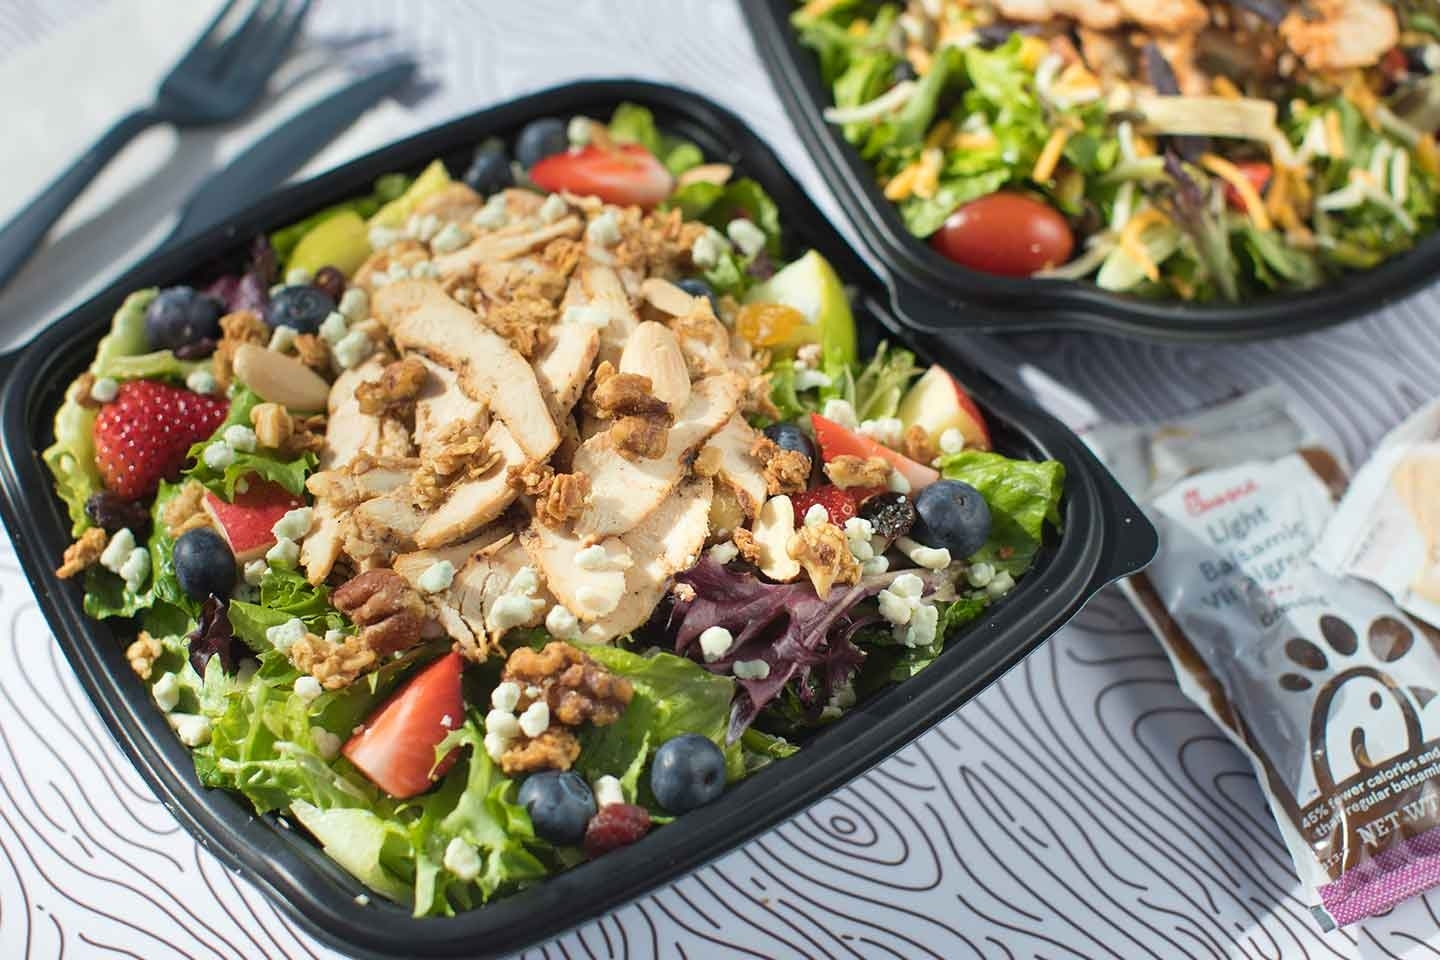 Can You Guess The Most Popular Chick-Fil-A Salad? | Chick-Fil-A within Will Chick Fil A Sell Calendars In 2020